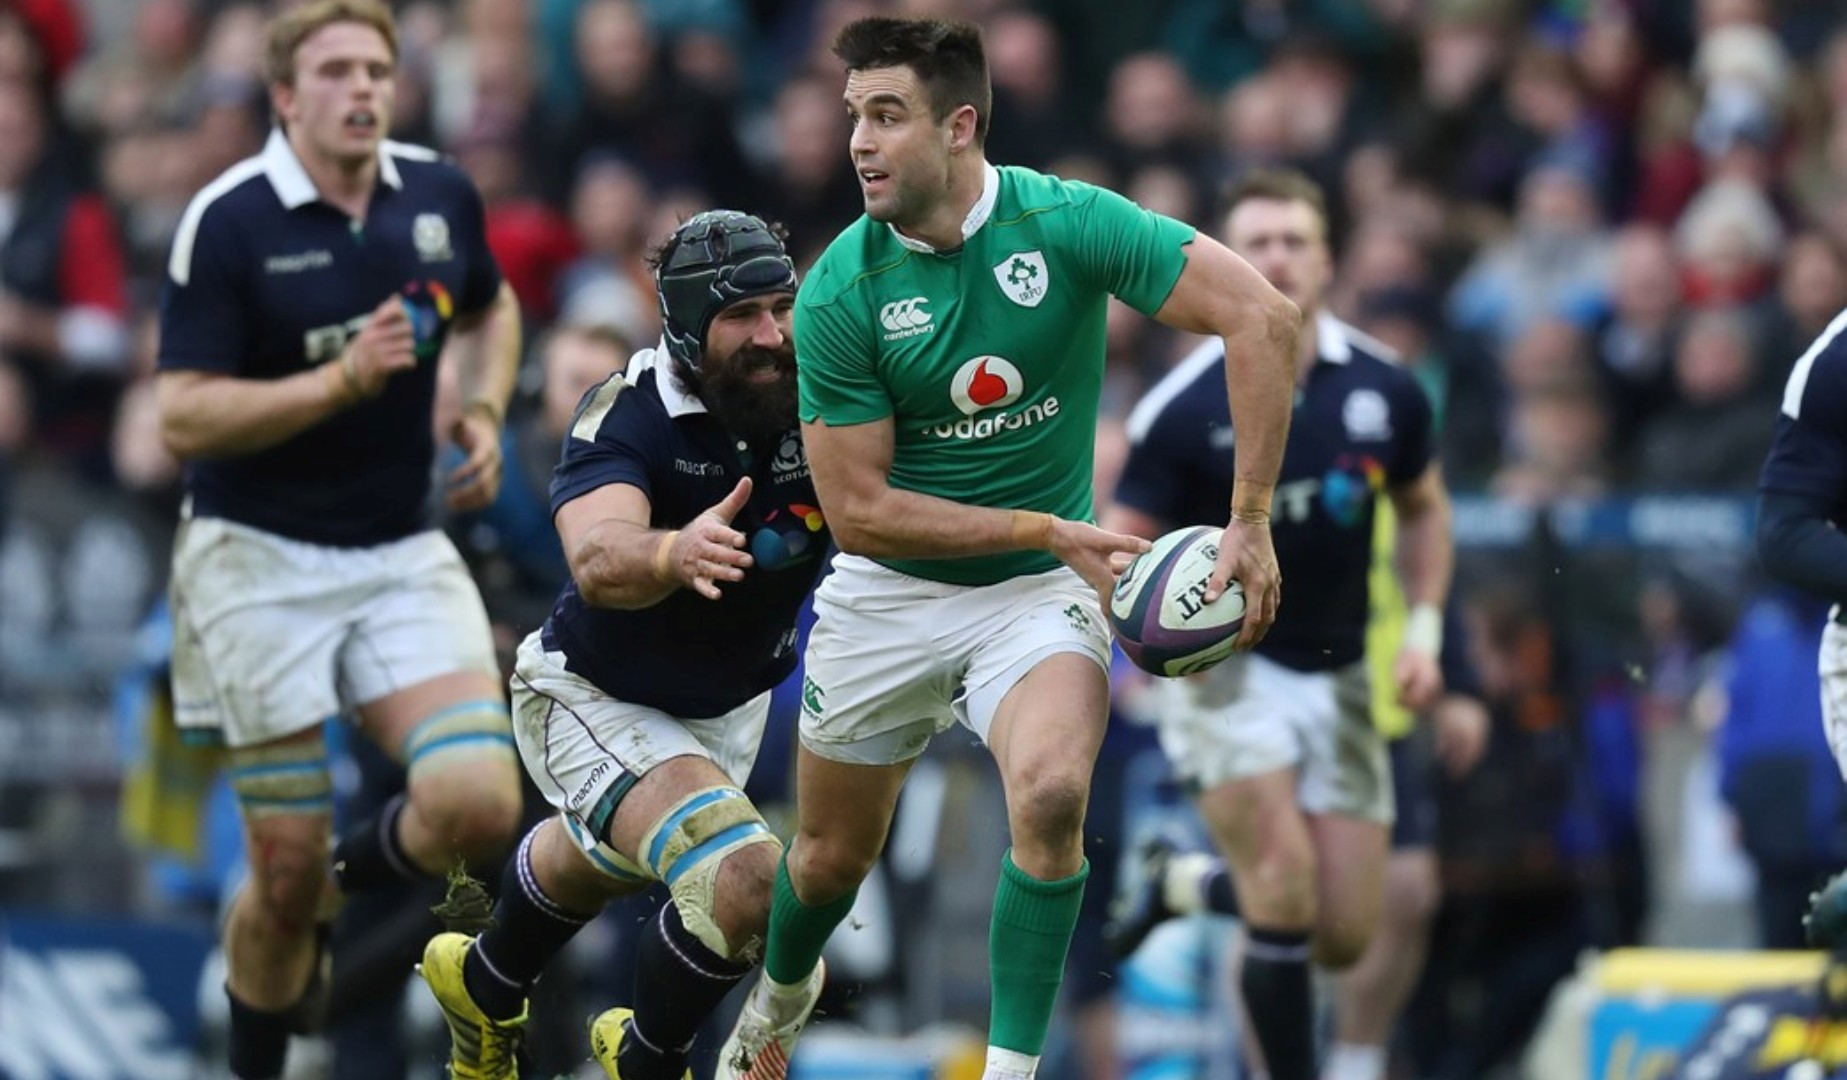 LionsWatch: Italy v Ireland preview